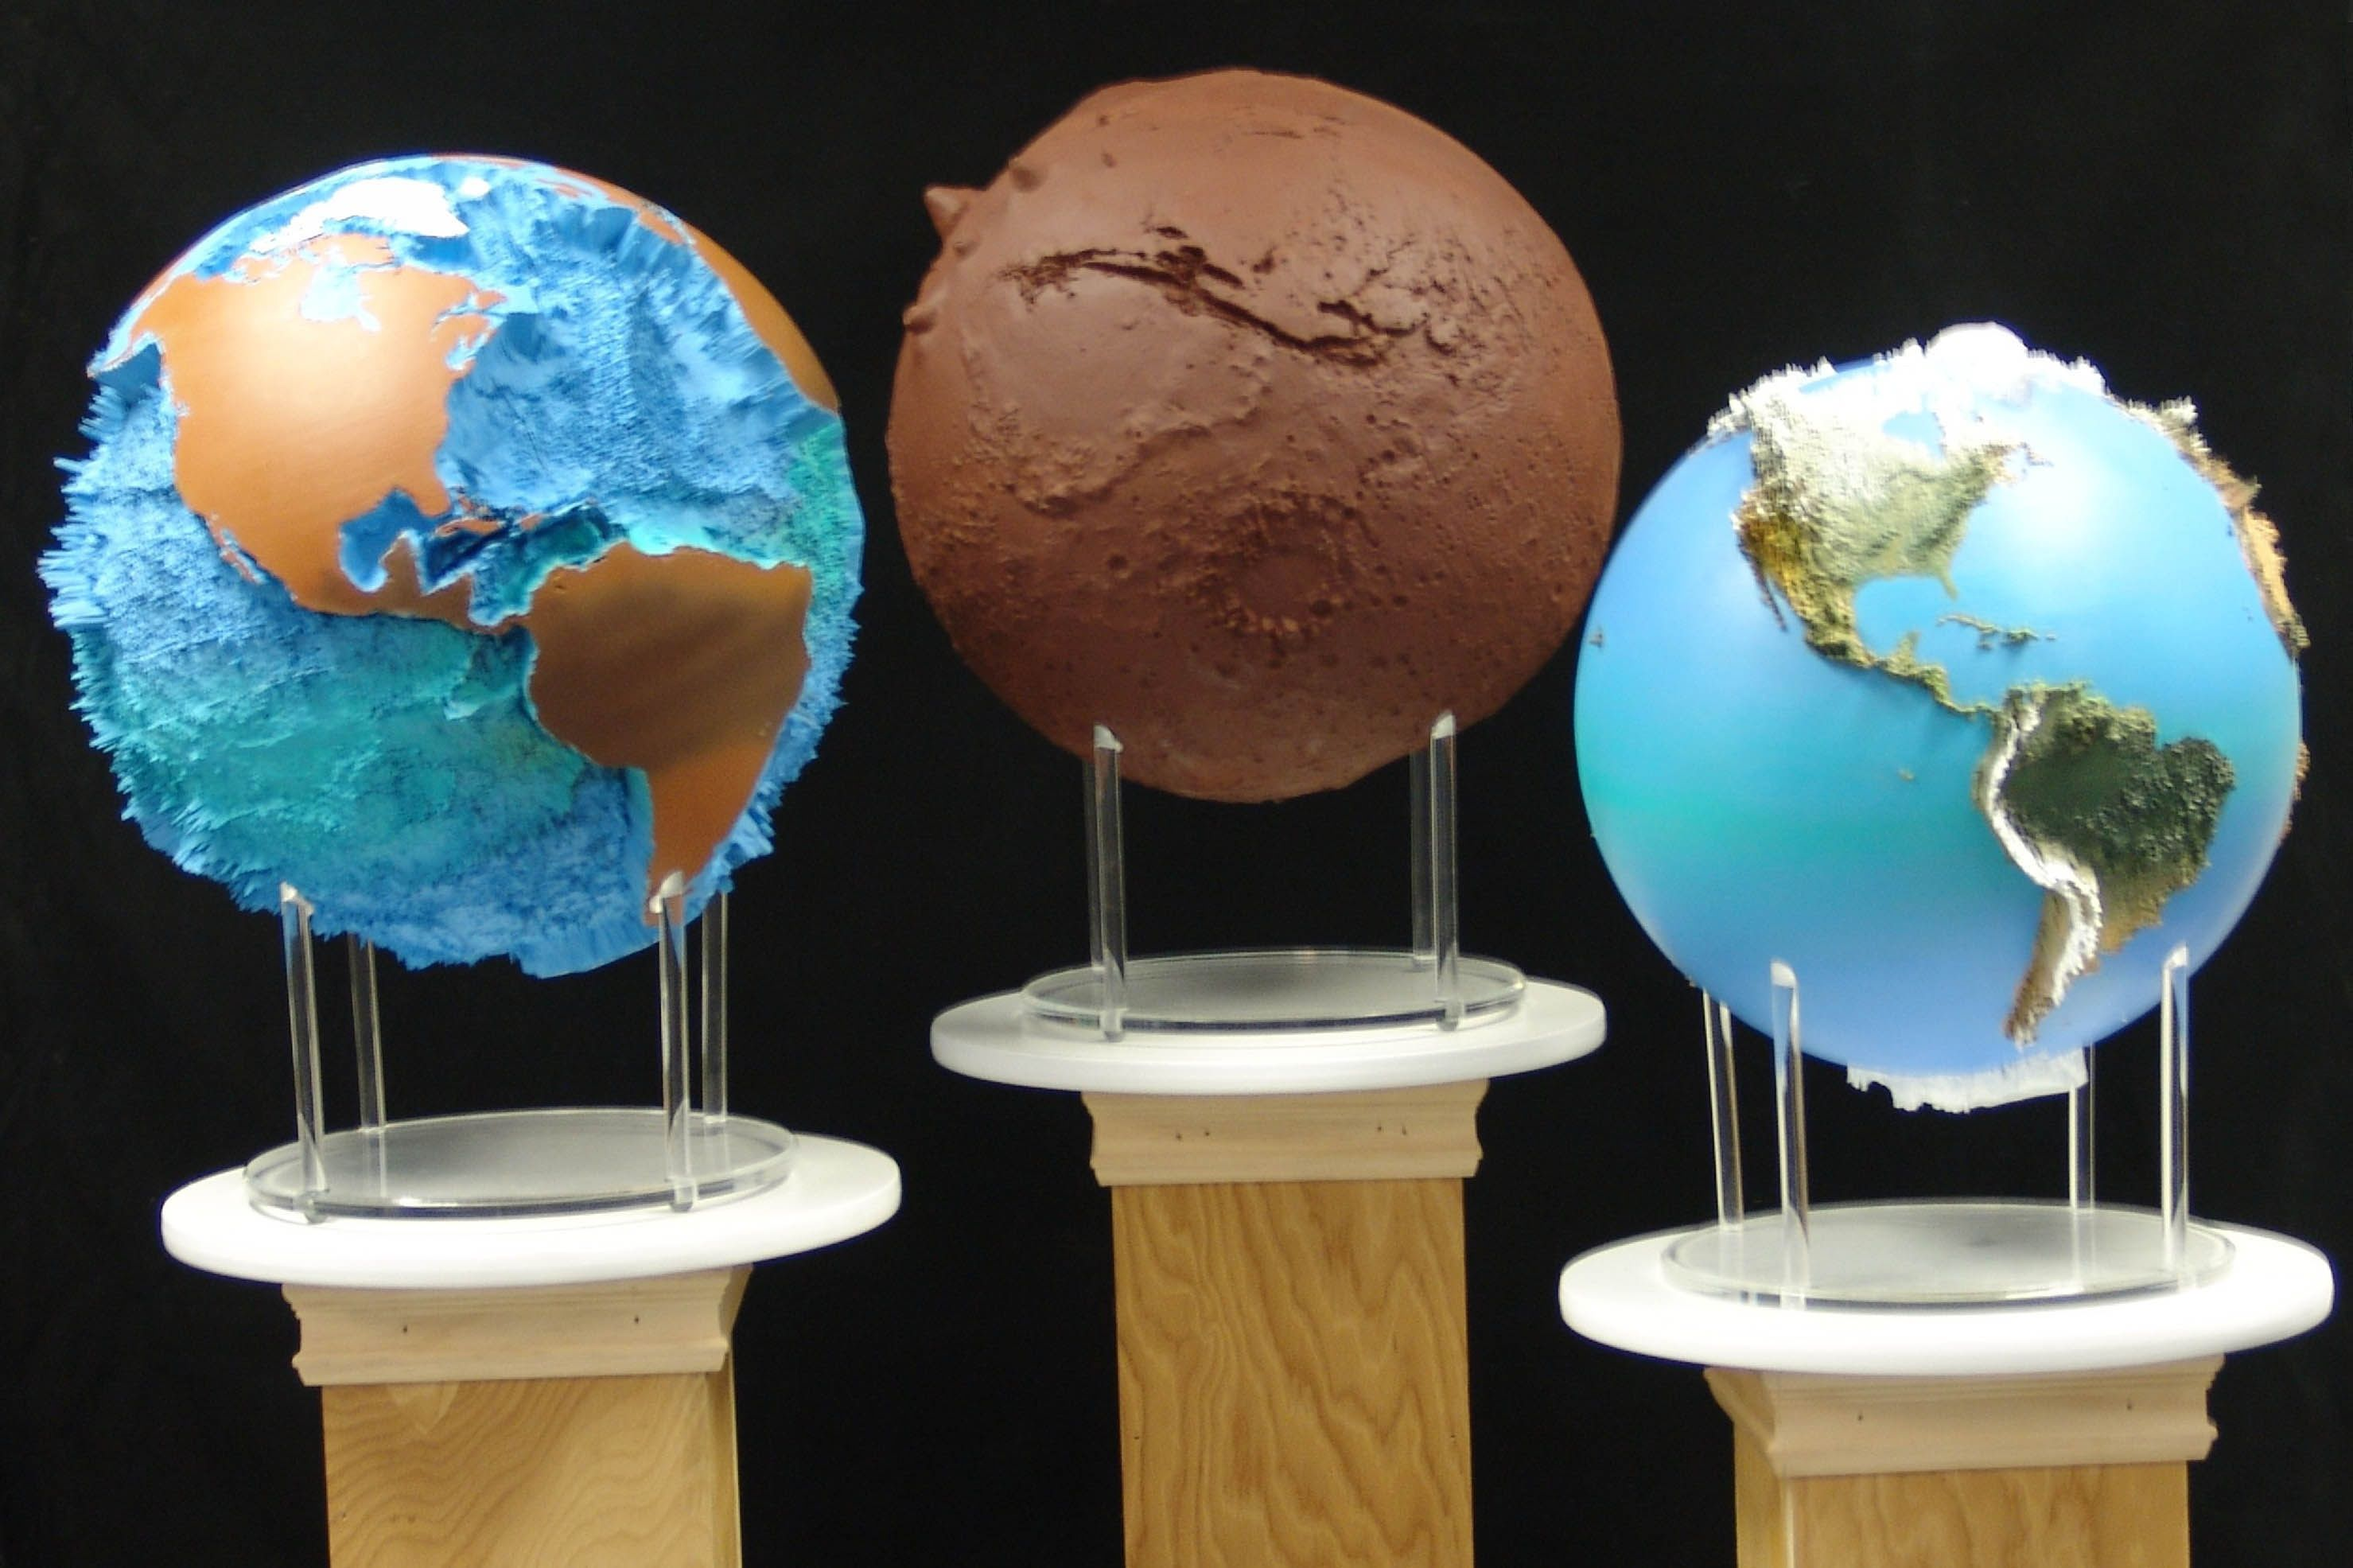 Spectrum 3d unveils mars and earth extreme raised relief globes at spectrum 3d unveils mars and earth extreme raised relief globes at international map trade association conference mars globe 20x first of its kind based on gumiabroncs Image collections